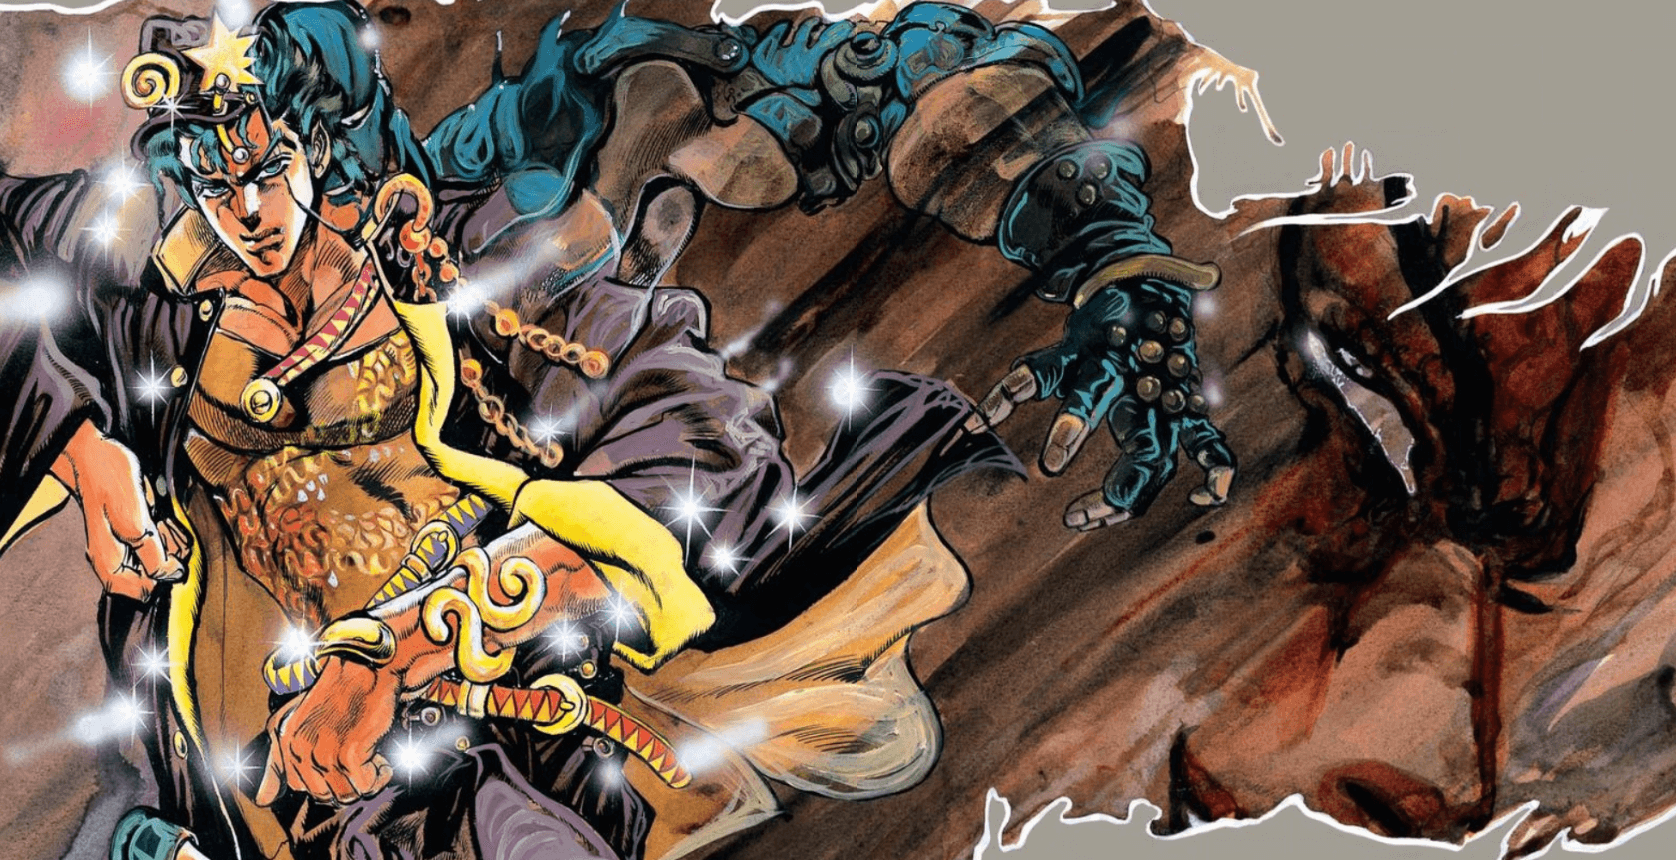 Jojo's Bizarre Adventure Part 3: Stardust Crusaders Vol. 1 Review